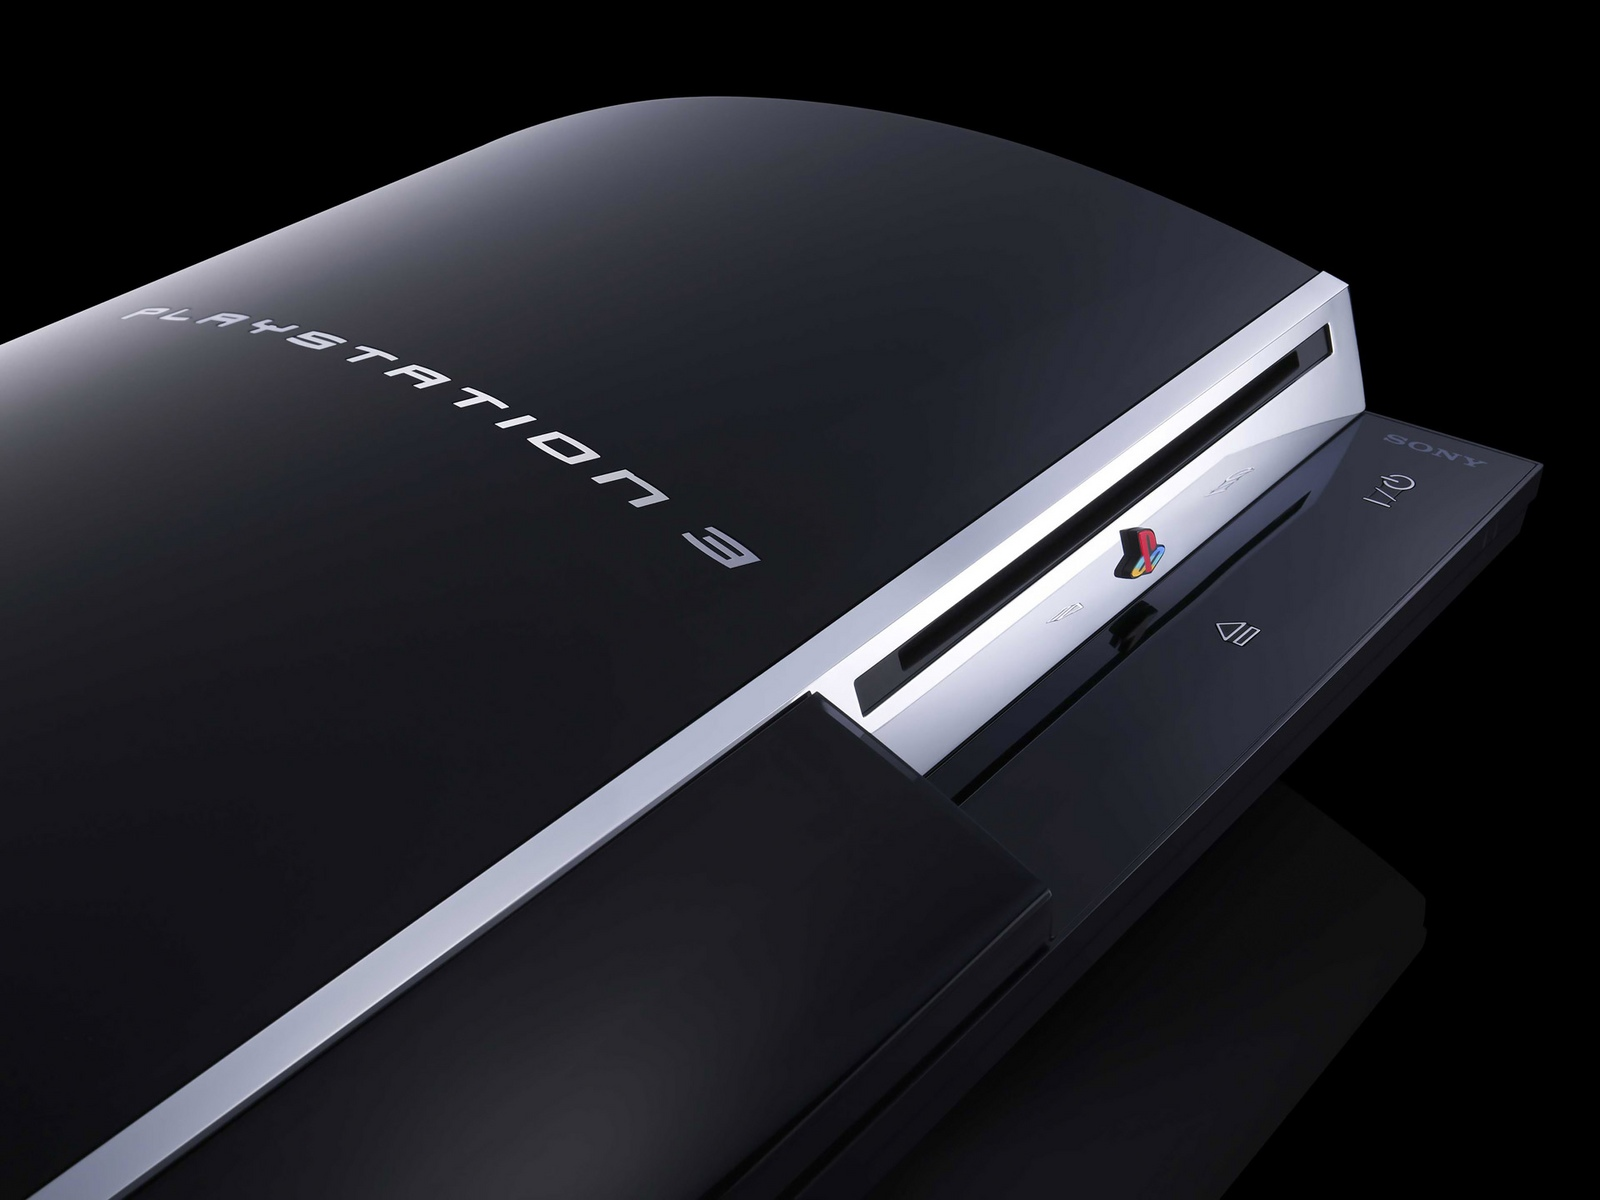 playstation 3 system computer wallpaper 61429